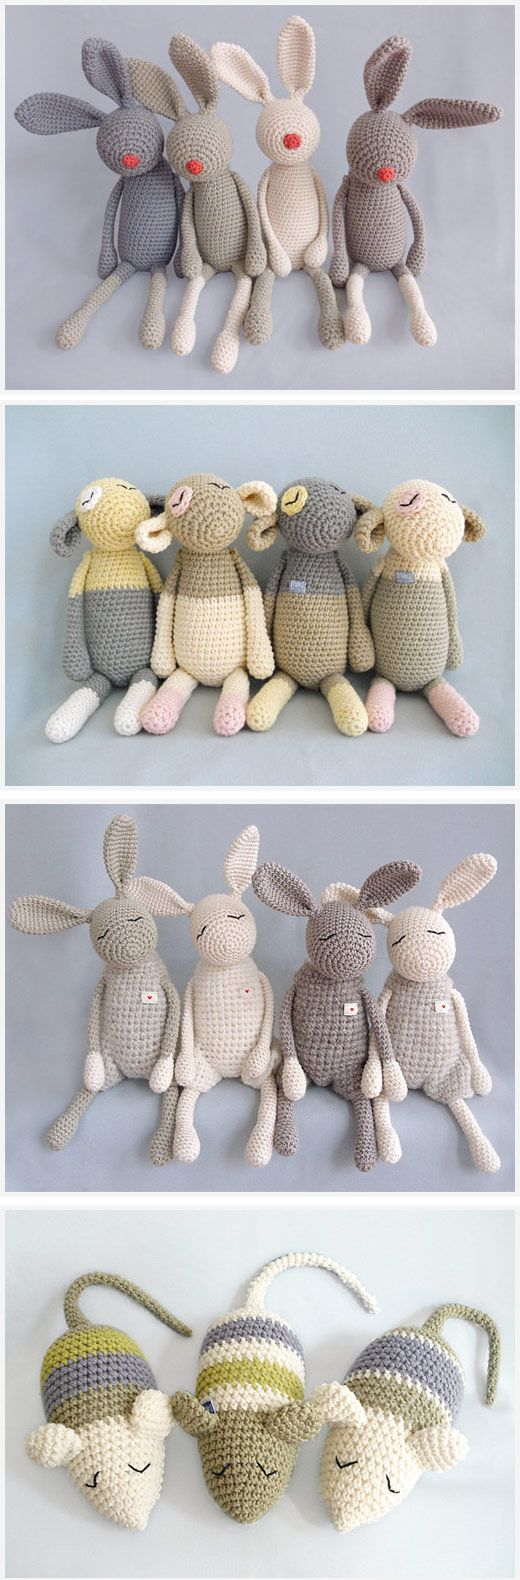 In honour of all things adorable and sweet, today I'd like to share a charming collection of crocheted creations from [i'de:] in Germany. Each of these gorgeous: